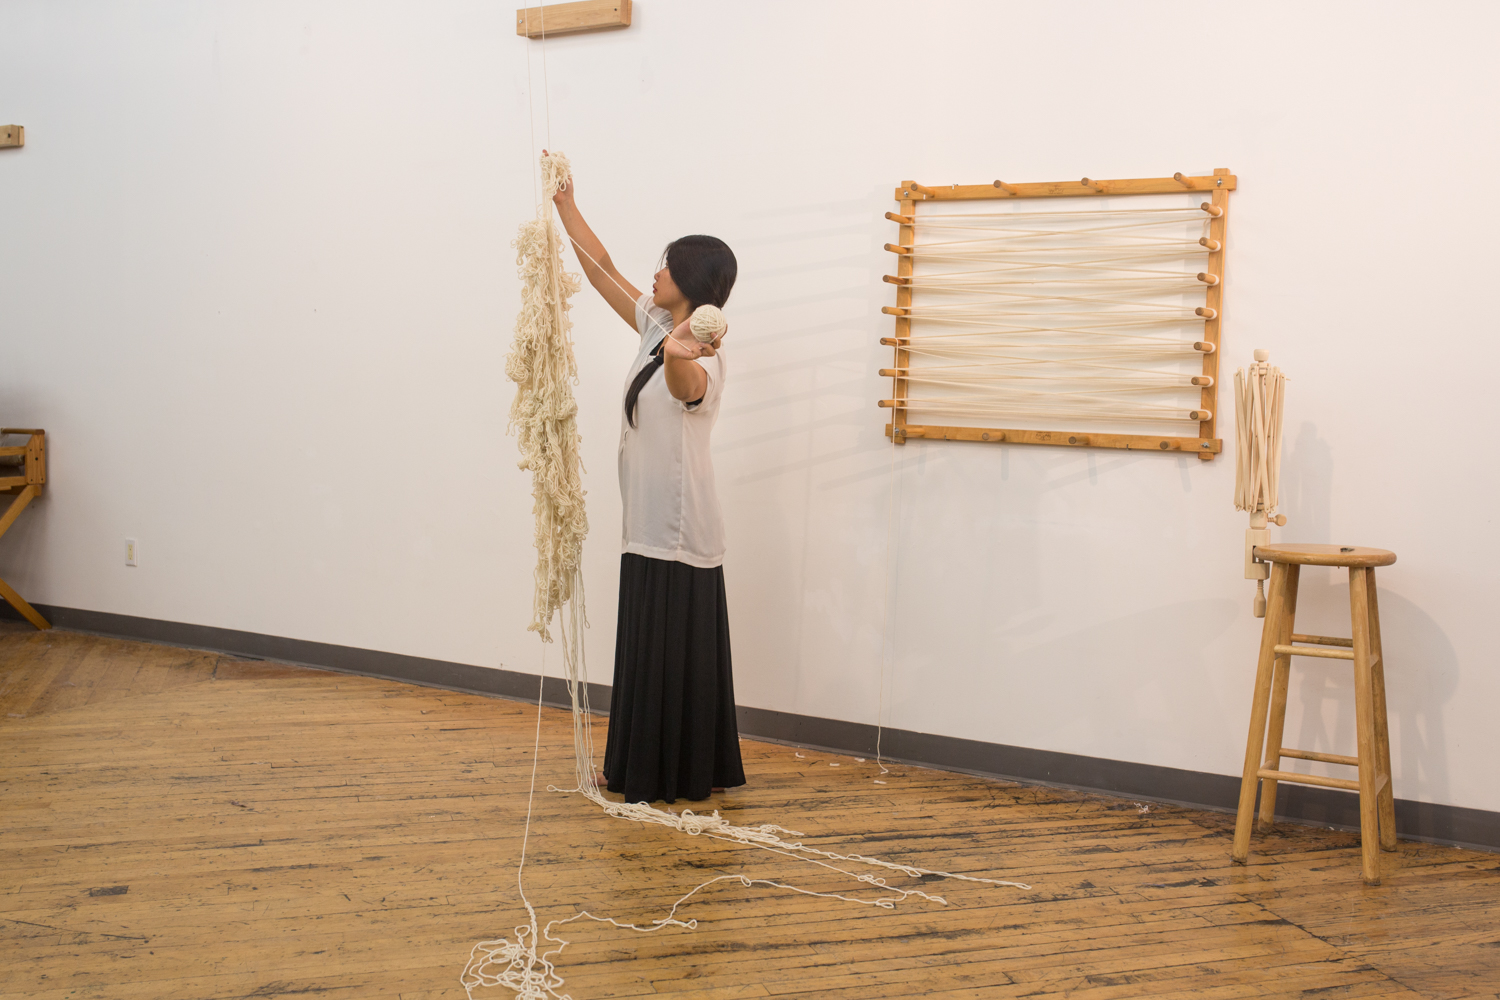 The artist holds a ball of yarn (around 1 inch in diameter) that she has untangled in her left hand as she continues to unravel with her right hand. Three-fourth of the knotted yarn has been unraveled.